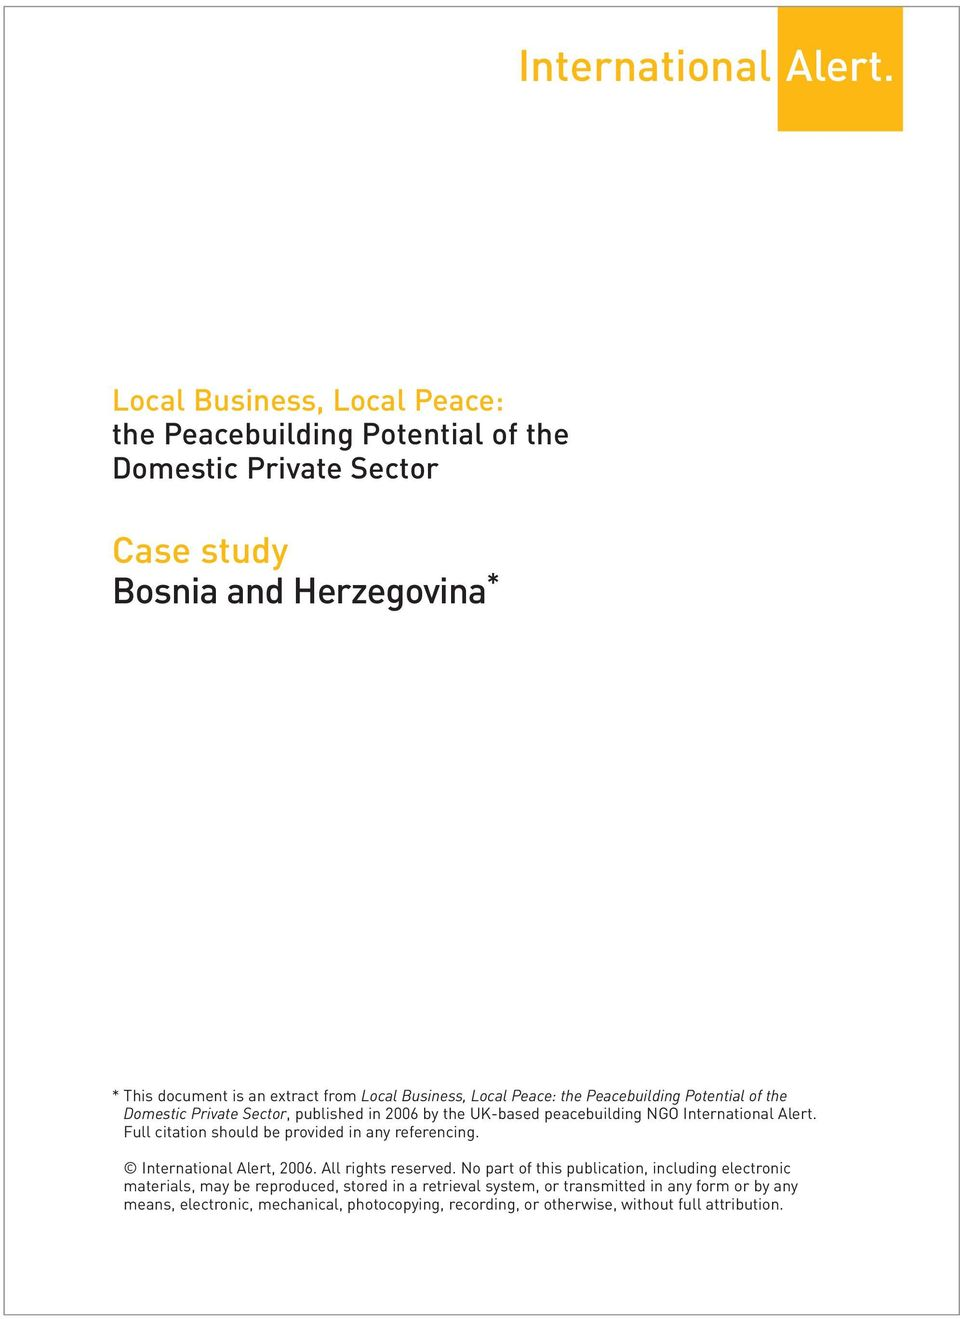 Business, Local Peace: the Peacebuilding Potential of the Domestic Private Sector, published in 2006 by the UK-based peacebuilding NGO  Full citation should be provided in